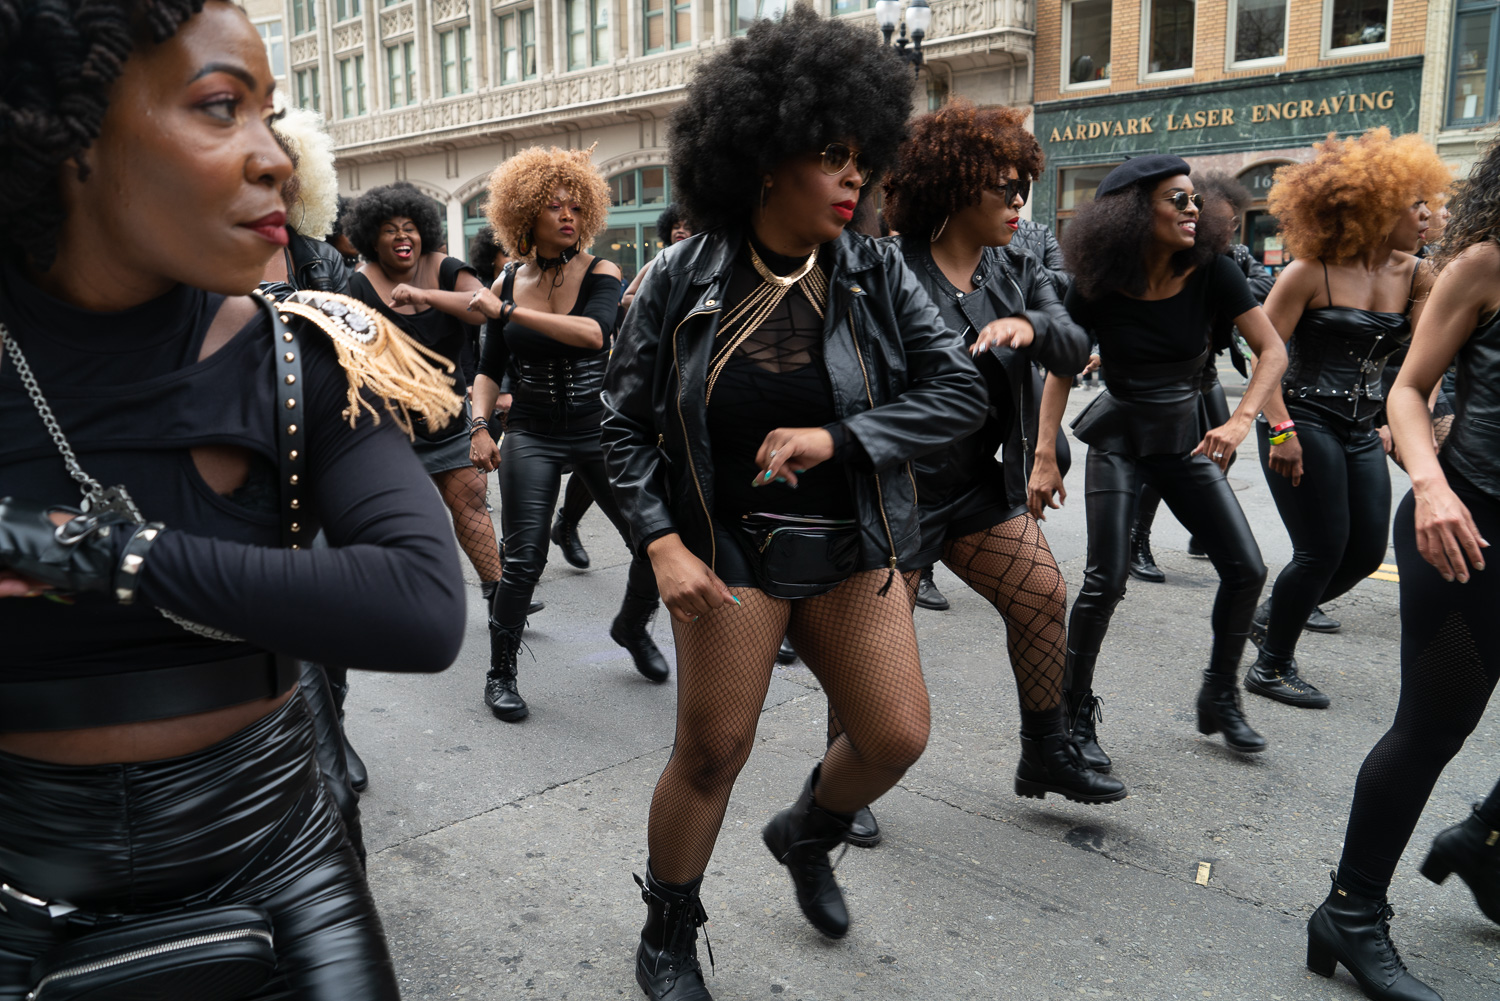 Black Joy Parade: Anyone know what group this is?